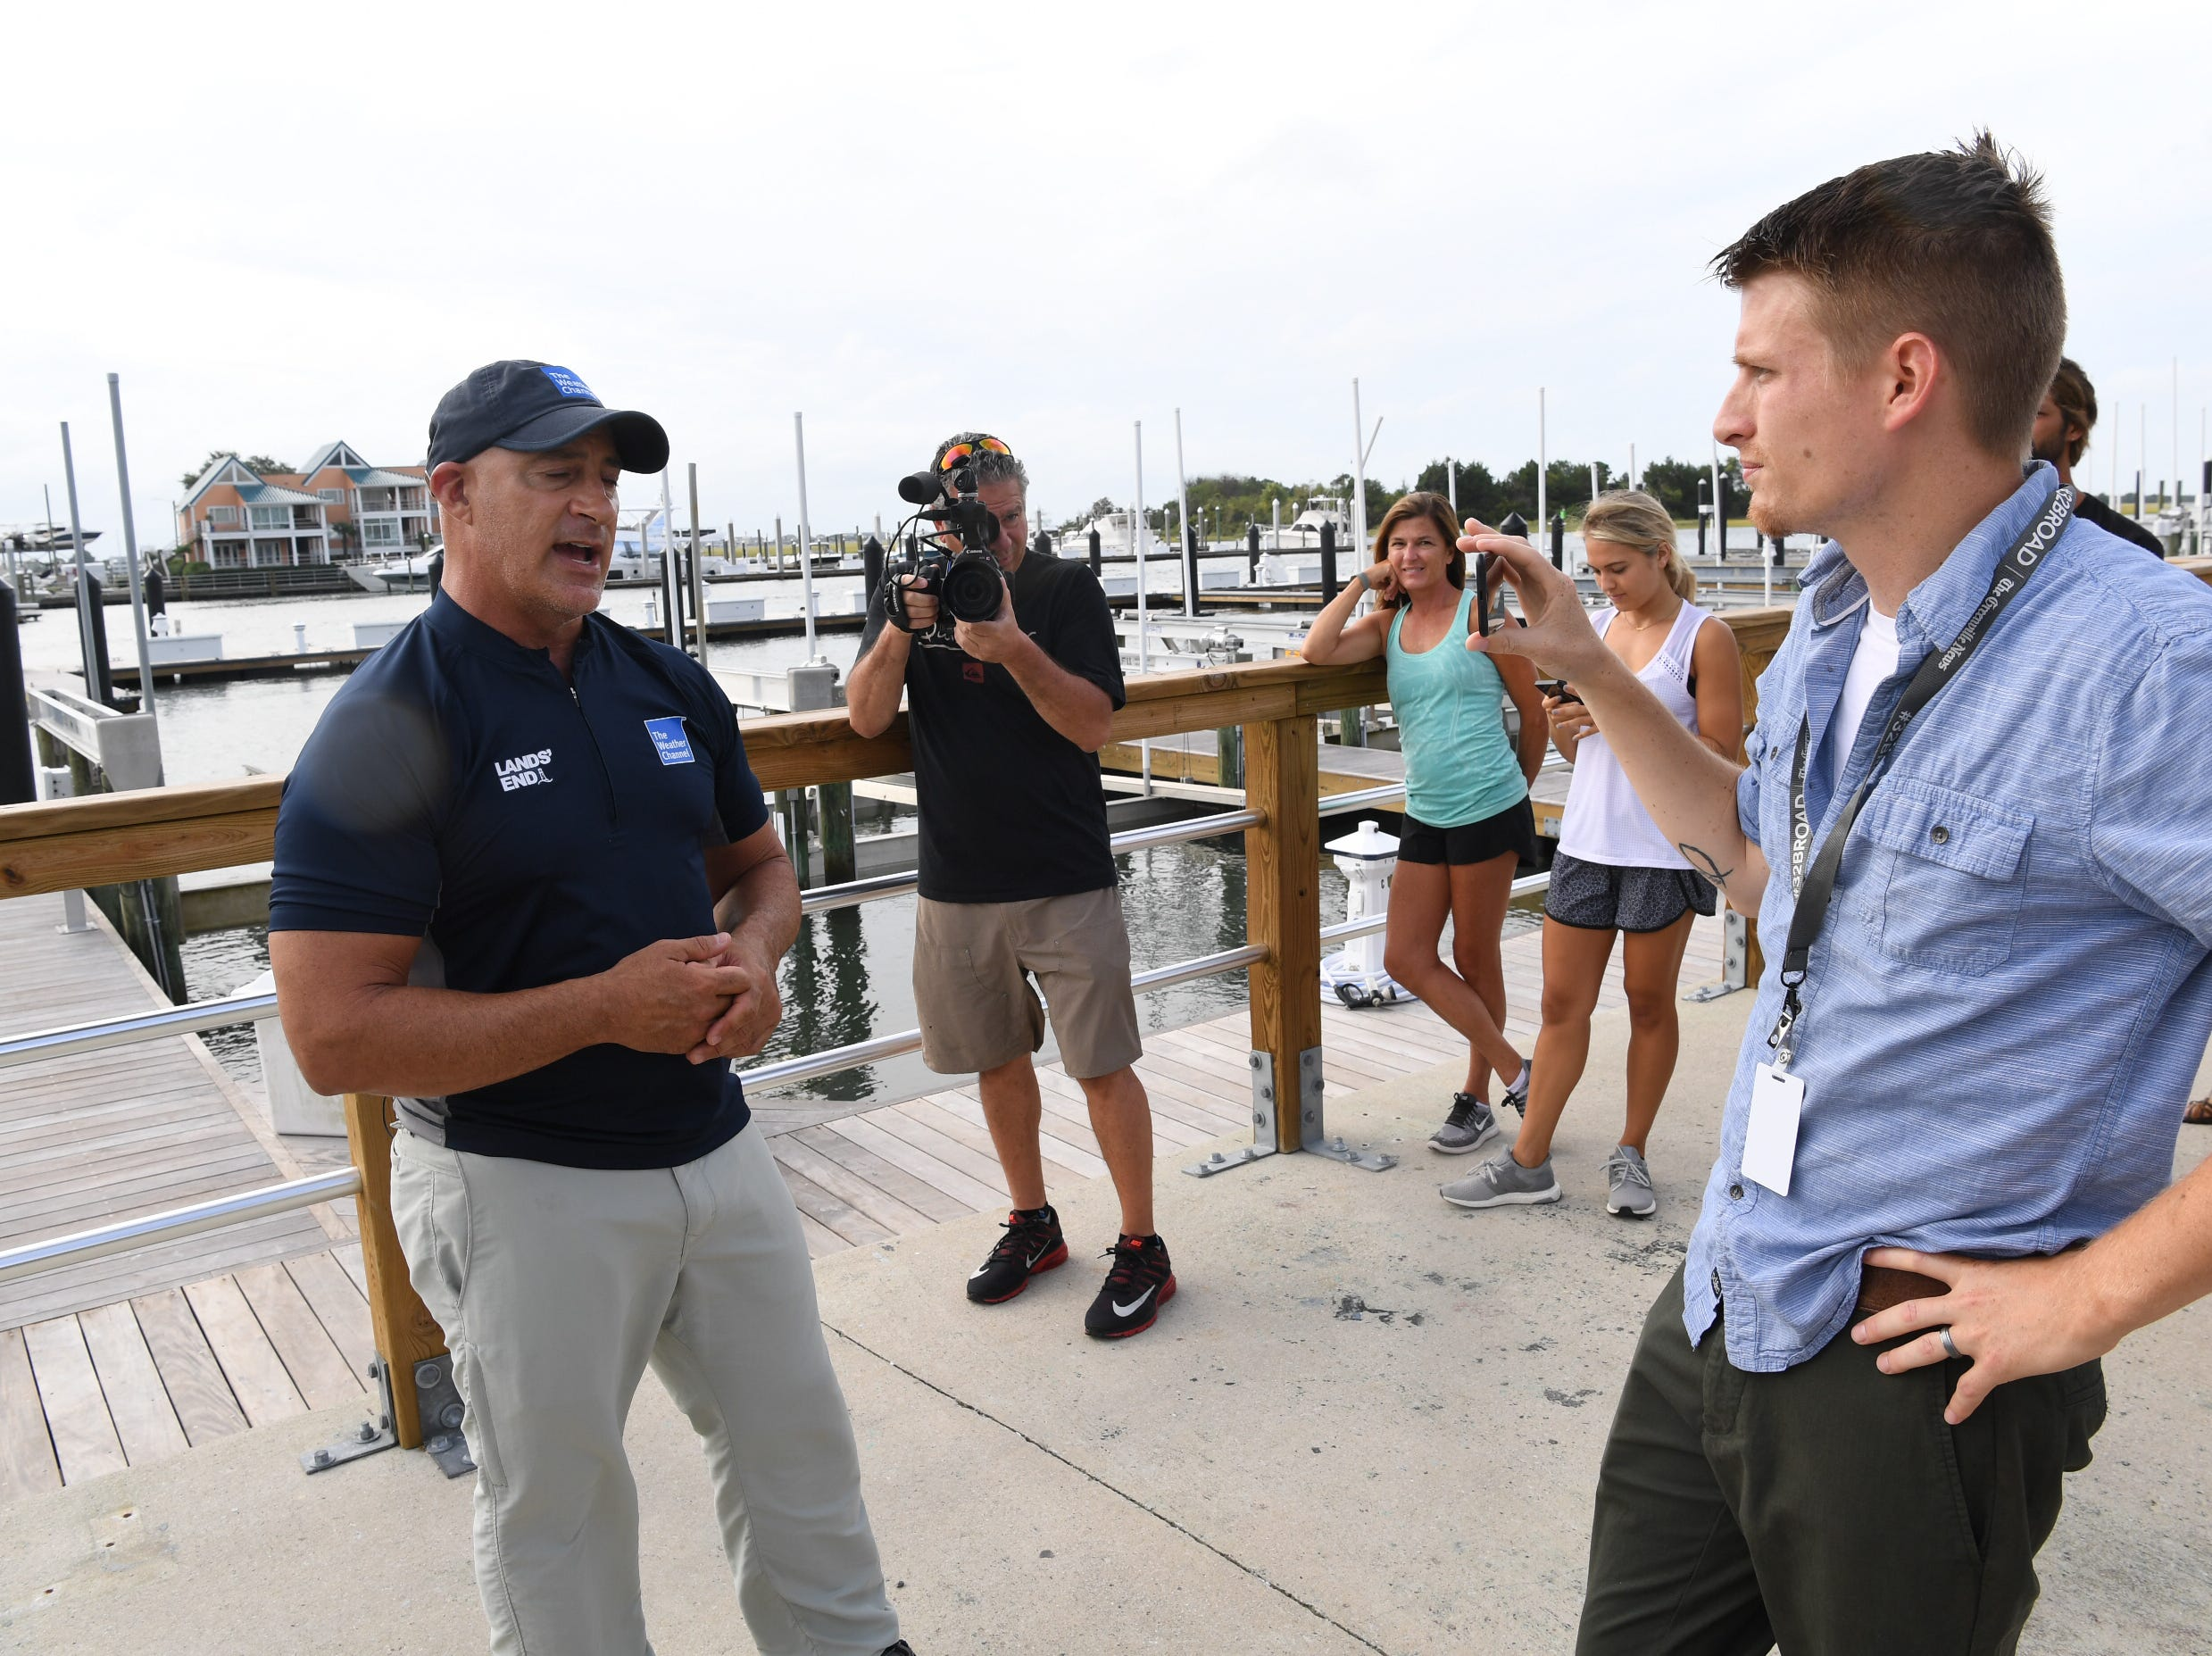 Greenville News and USA Today Network reporter Daniel Gross chats with The Weather Channel's Jim Cantore on Thursday, Sept. 13, 2018.